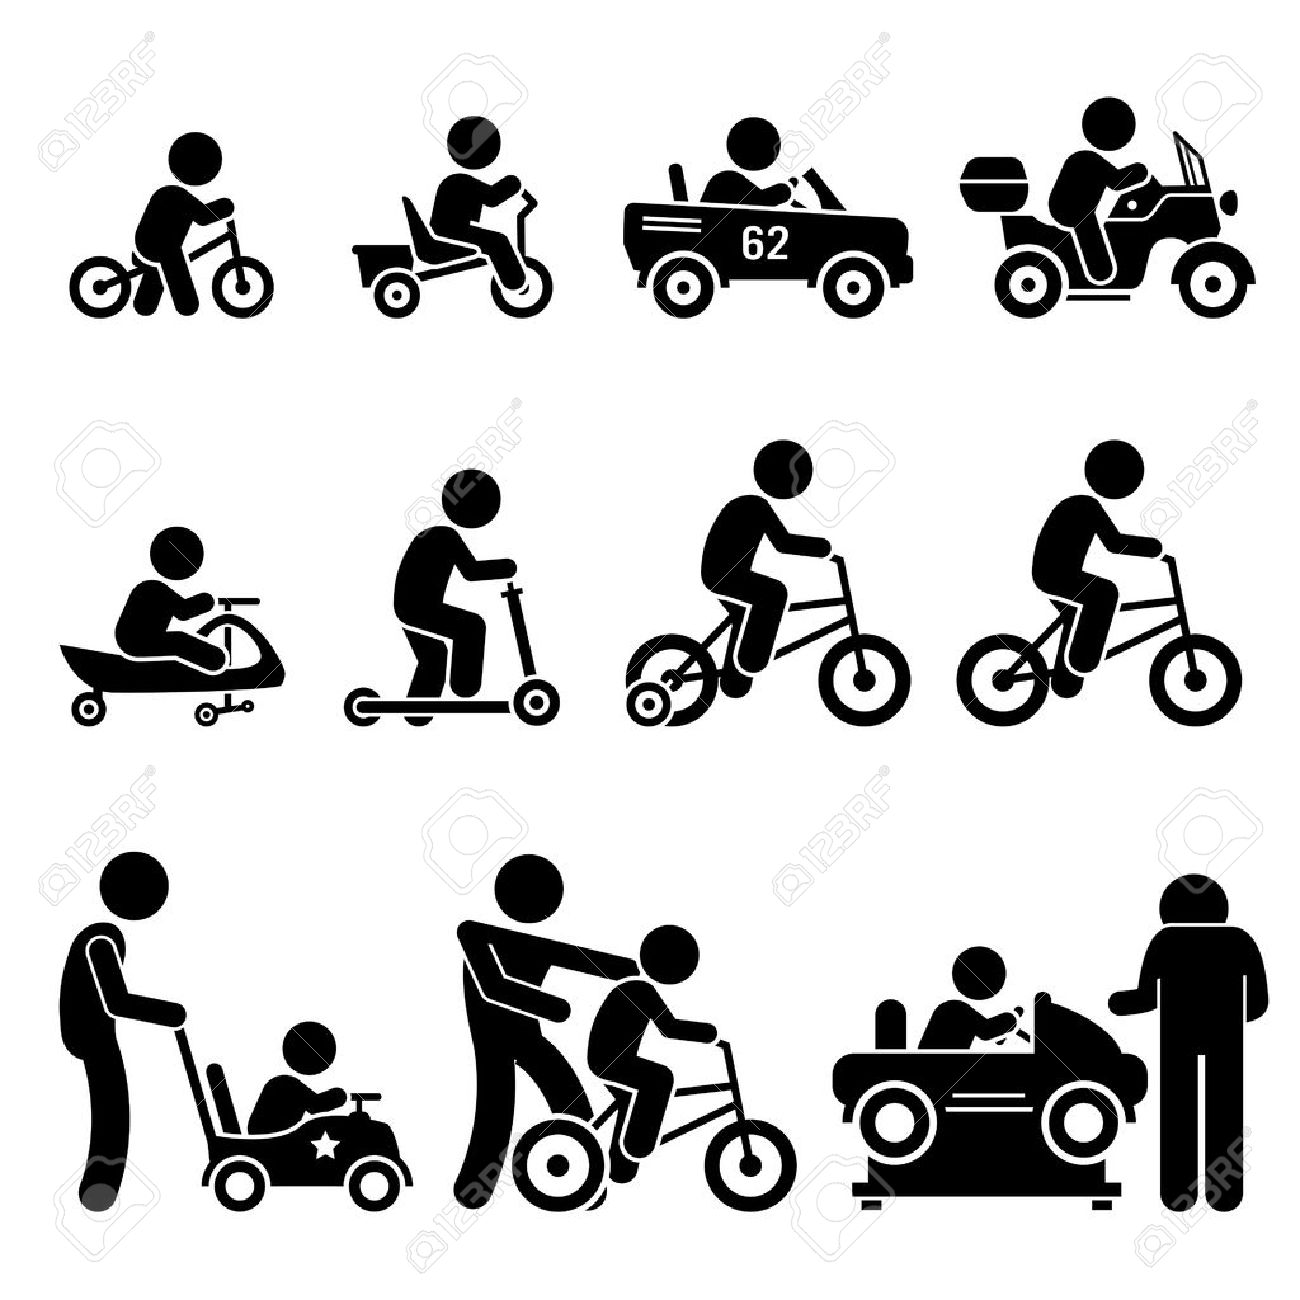 Small Children Riding Toy Vehicles and Bicycle Stick Figure Pictogram Icons - 53802602